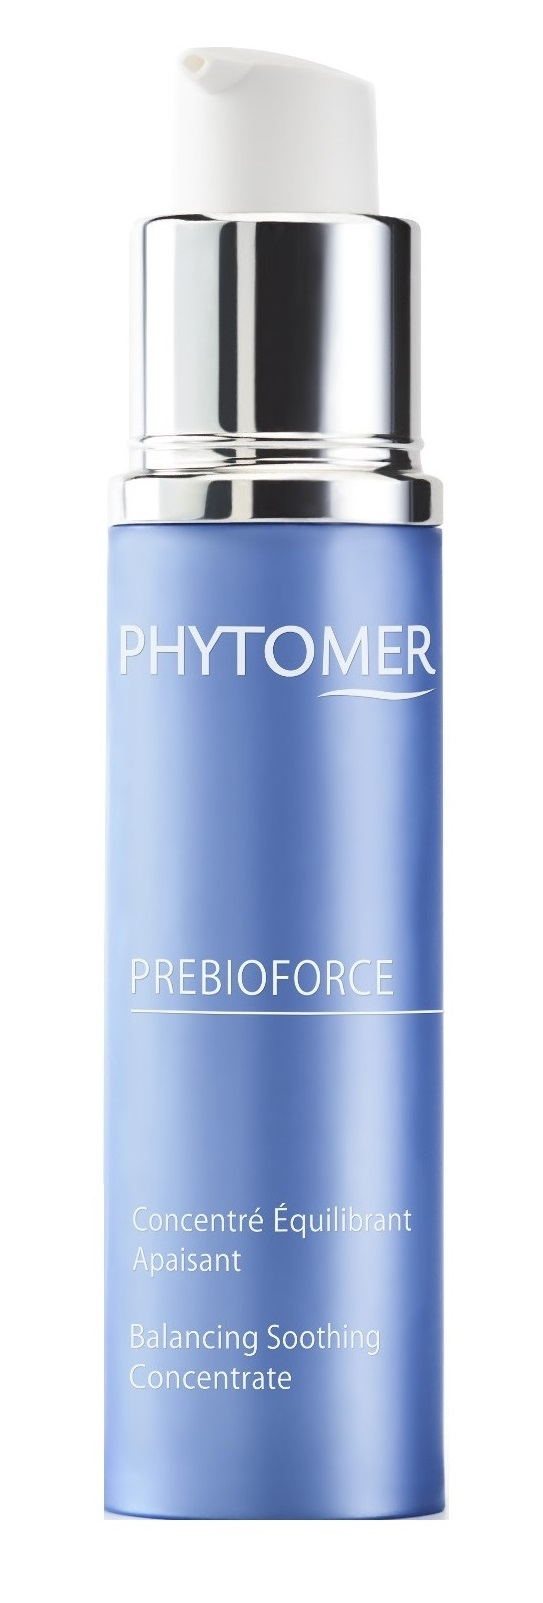 Купить PHYTOMER Концентрат восстанавливающий Пребиотик / PREBIOFORCE BALANCING SOOTHING CONCENTRATE 30 мл